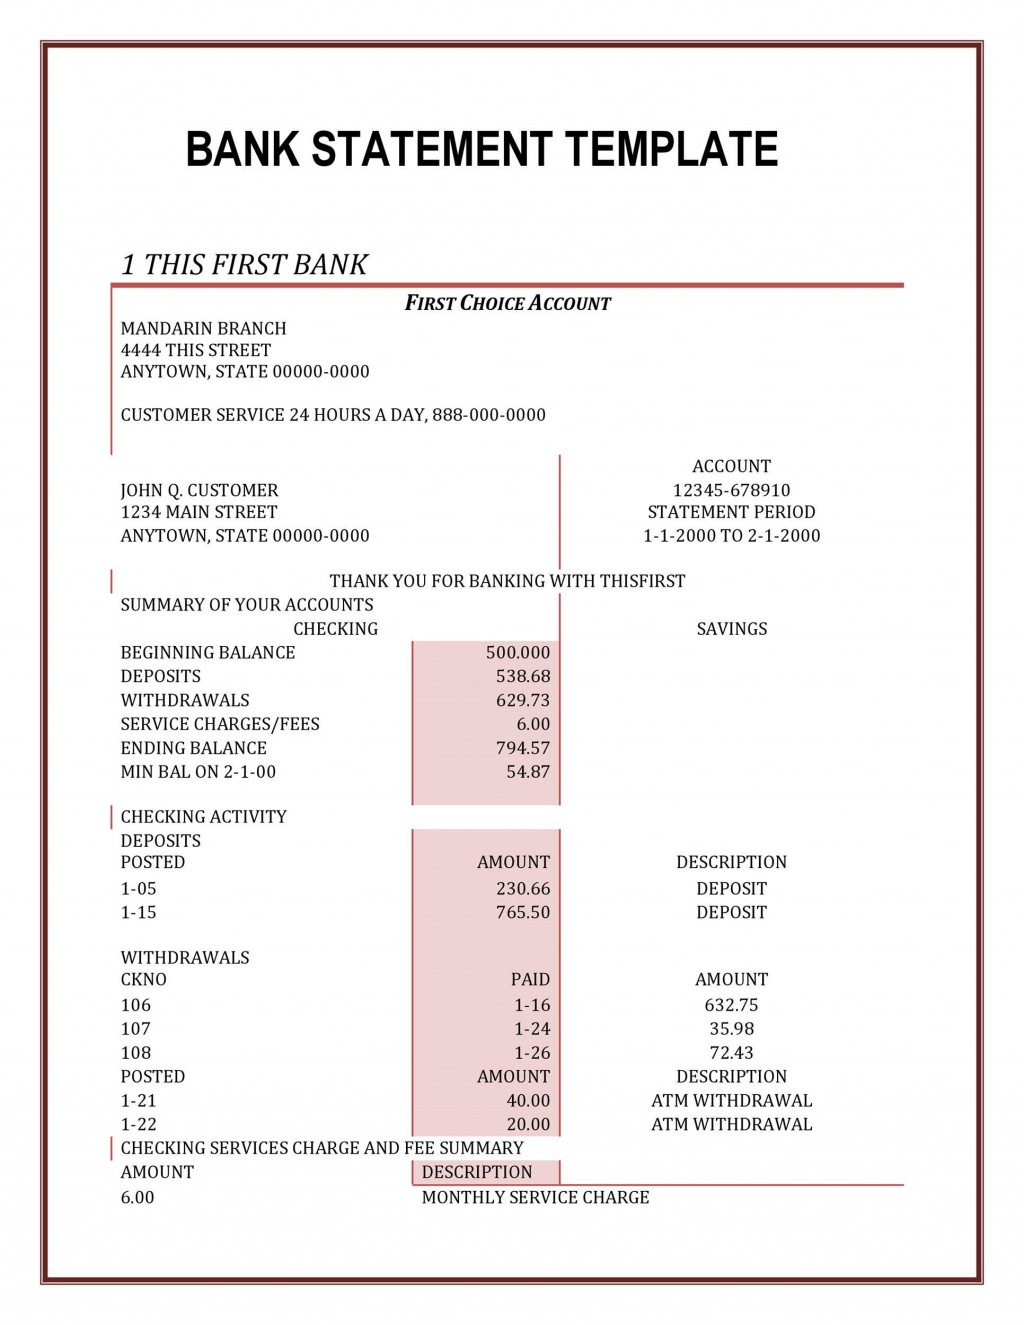 004 Stunning Chase Bank Statement Template Photo  Doc Free FakeLarge